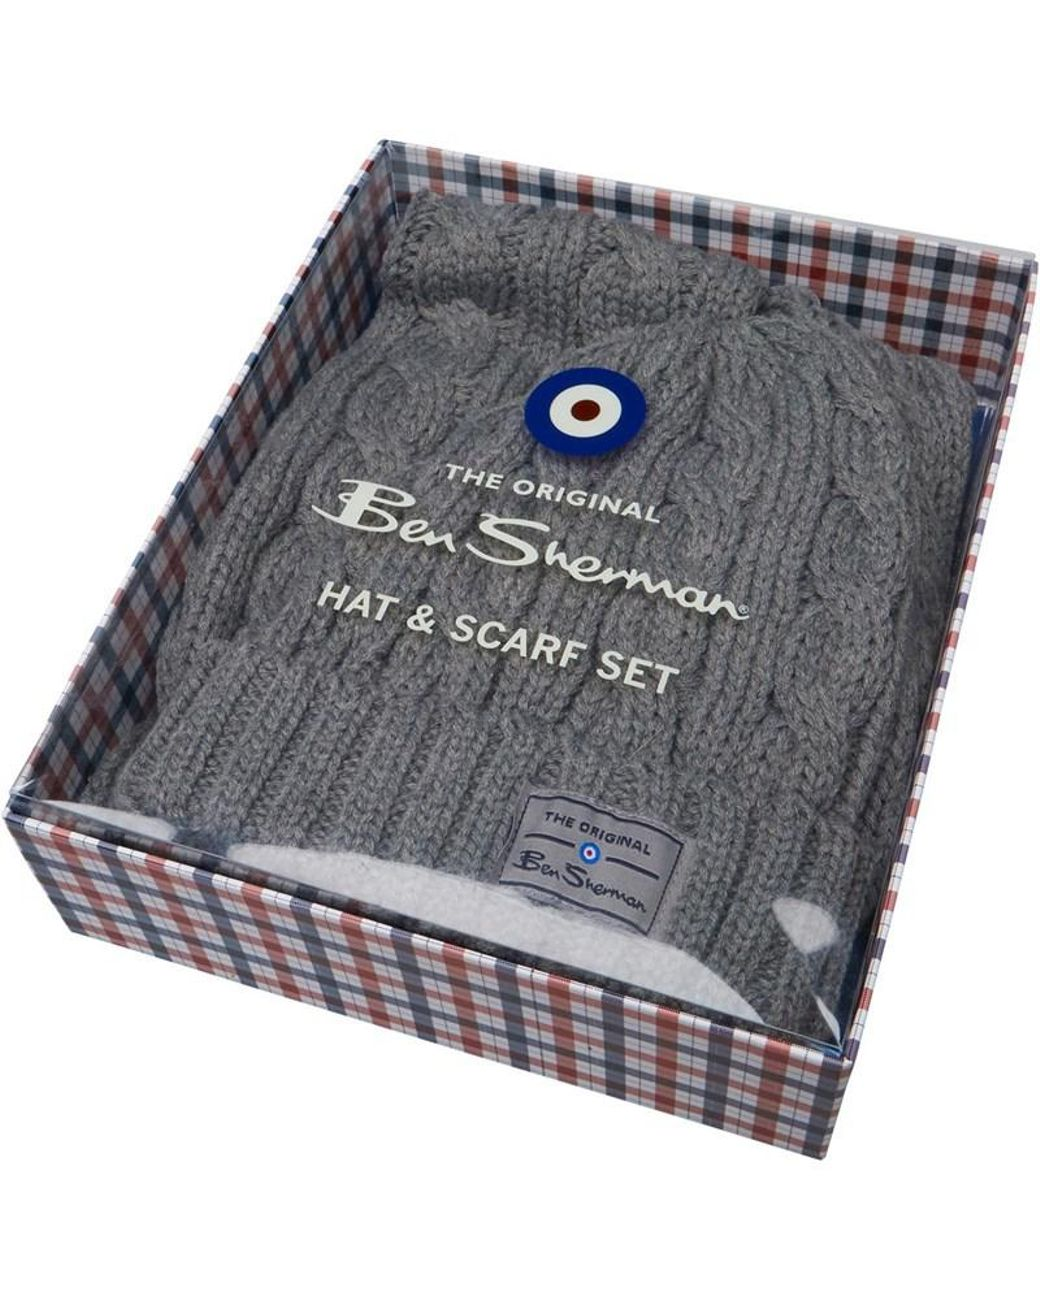 81e4557827d92 Ben Sherman Reyes Cable Hat & Scarf Set Grey in Gray for Men - Lyst